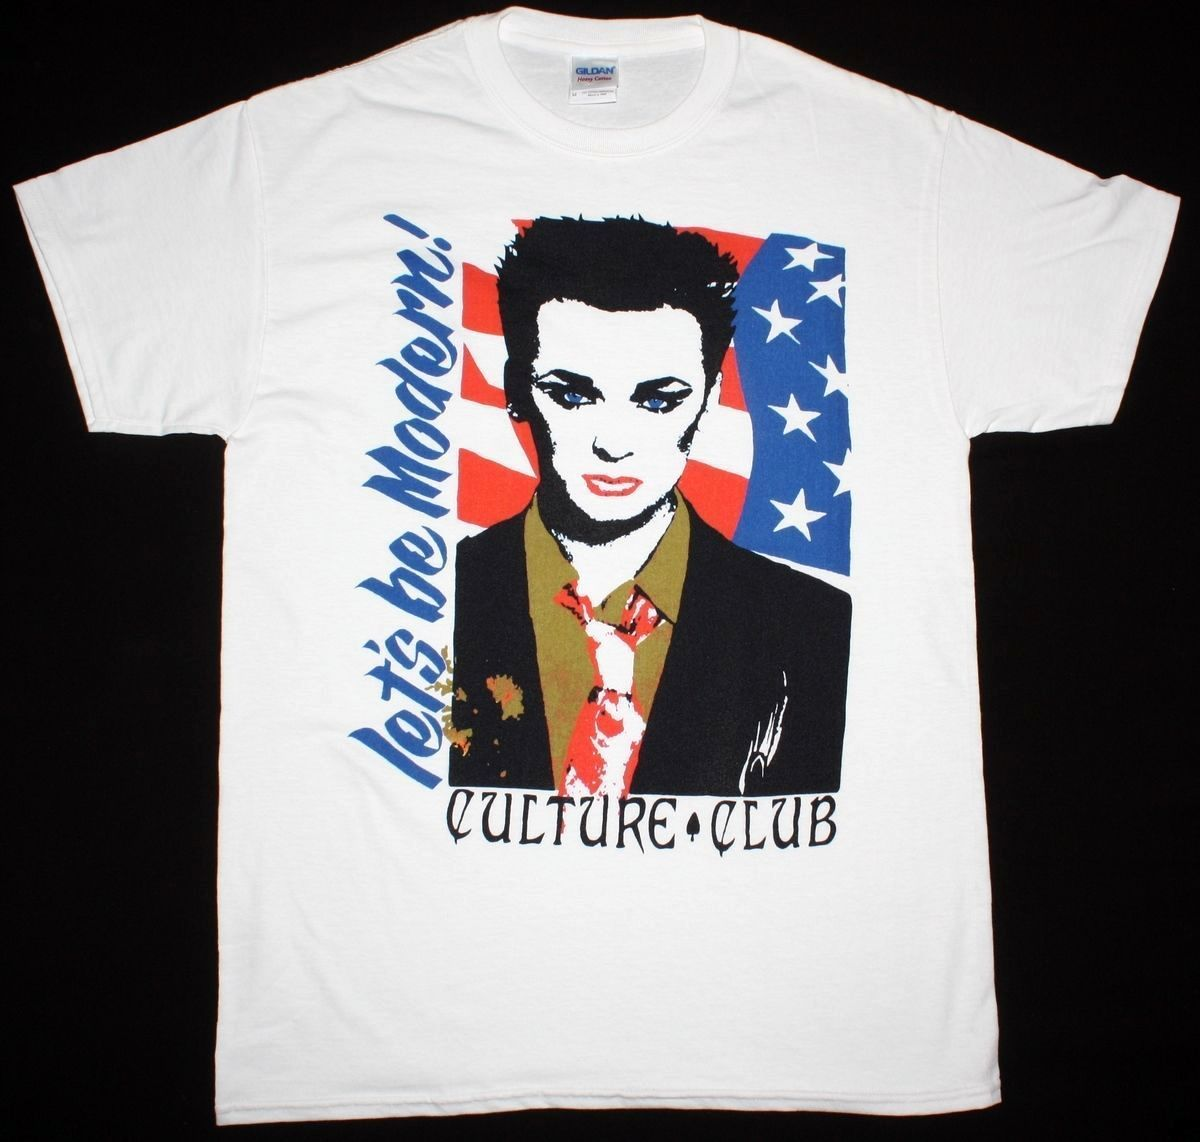 CULTURE CLUB LET'S BE MODERN BOY GEORGE NEW WAVE BOW WOW WOW NEW WHITE T-SHIRT Cool T Shirts Designs Best Selling Men image